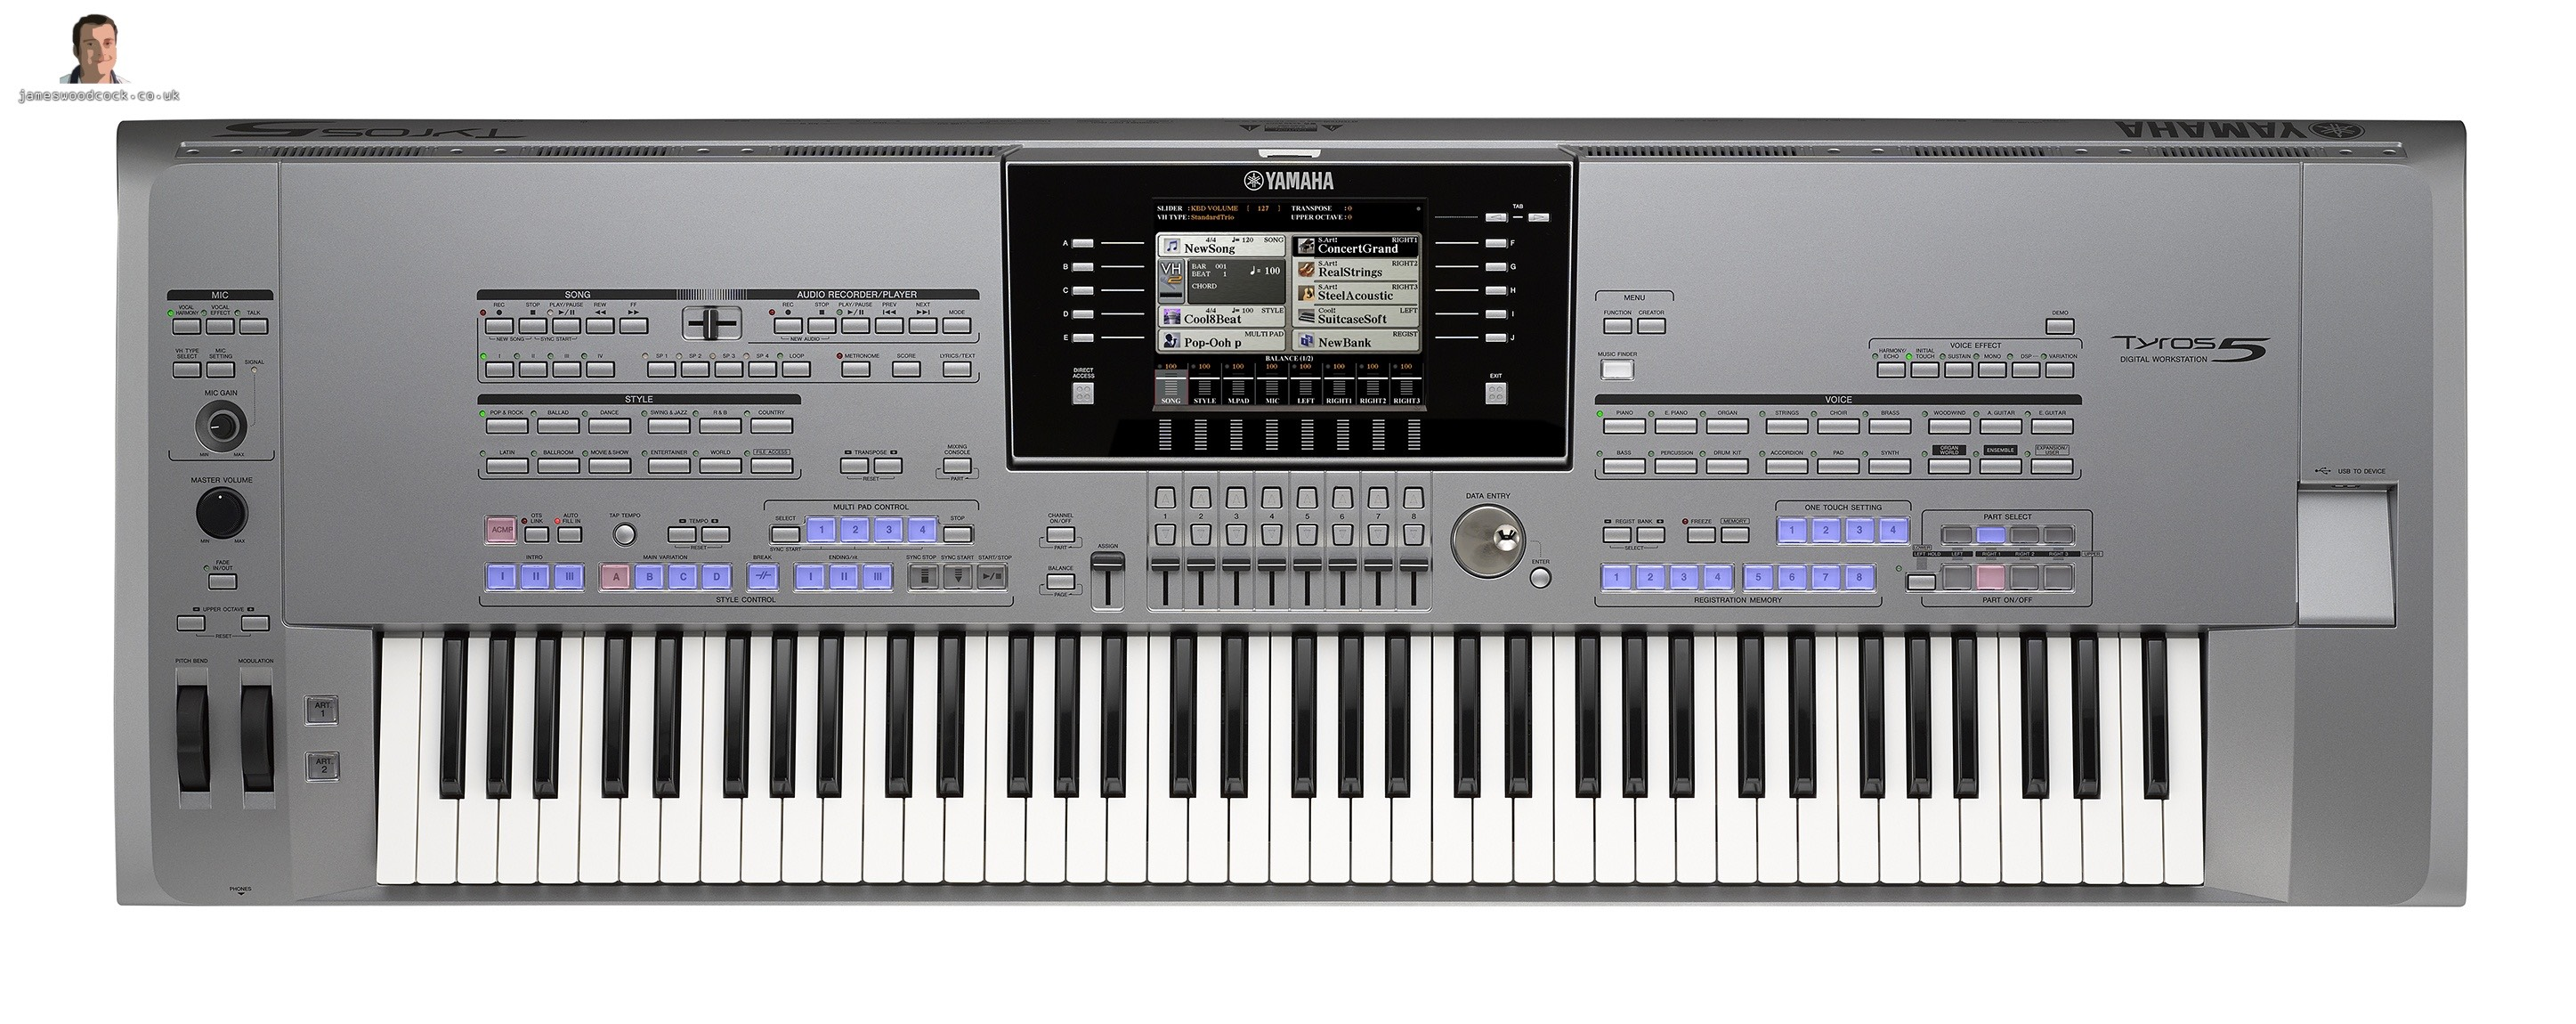 yamaha tyros 5 keyboard main demonstration images